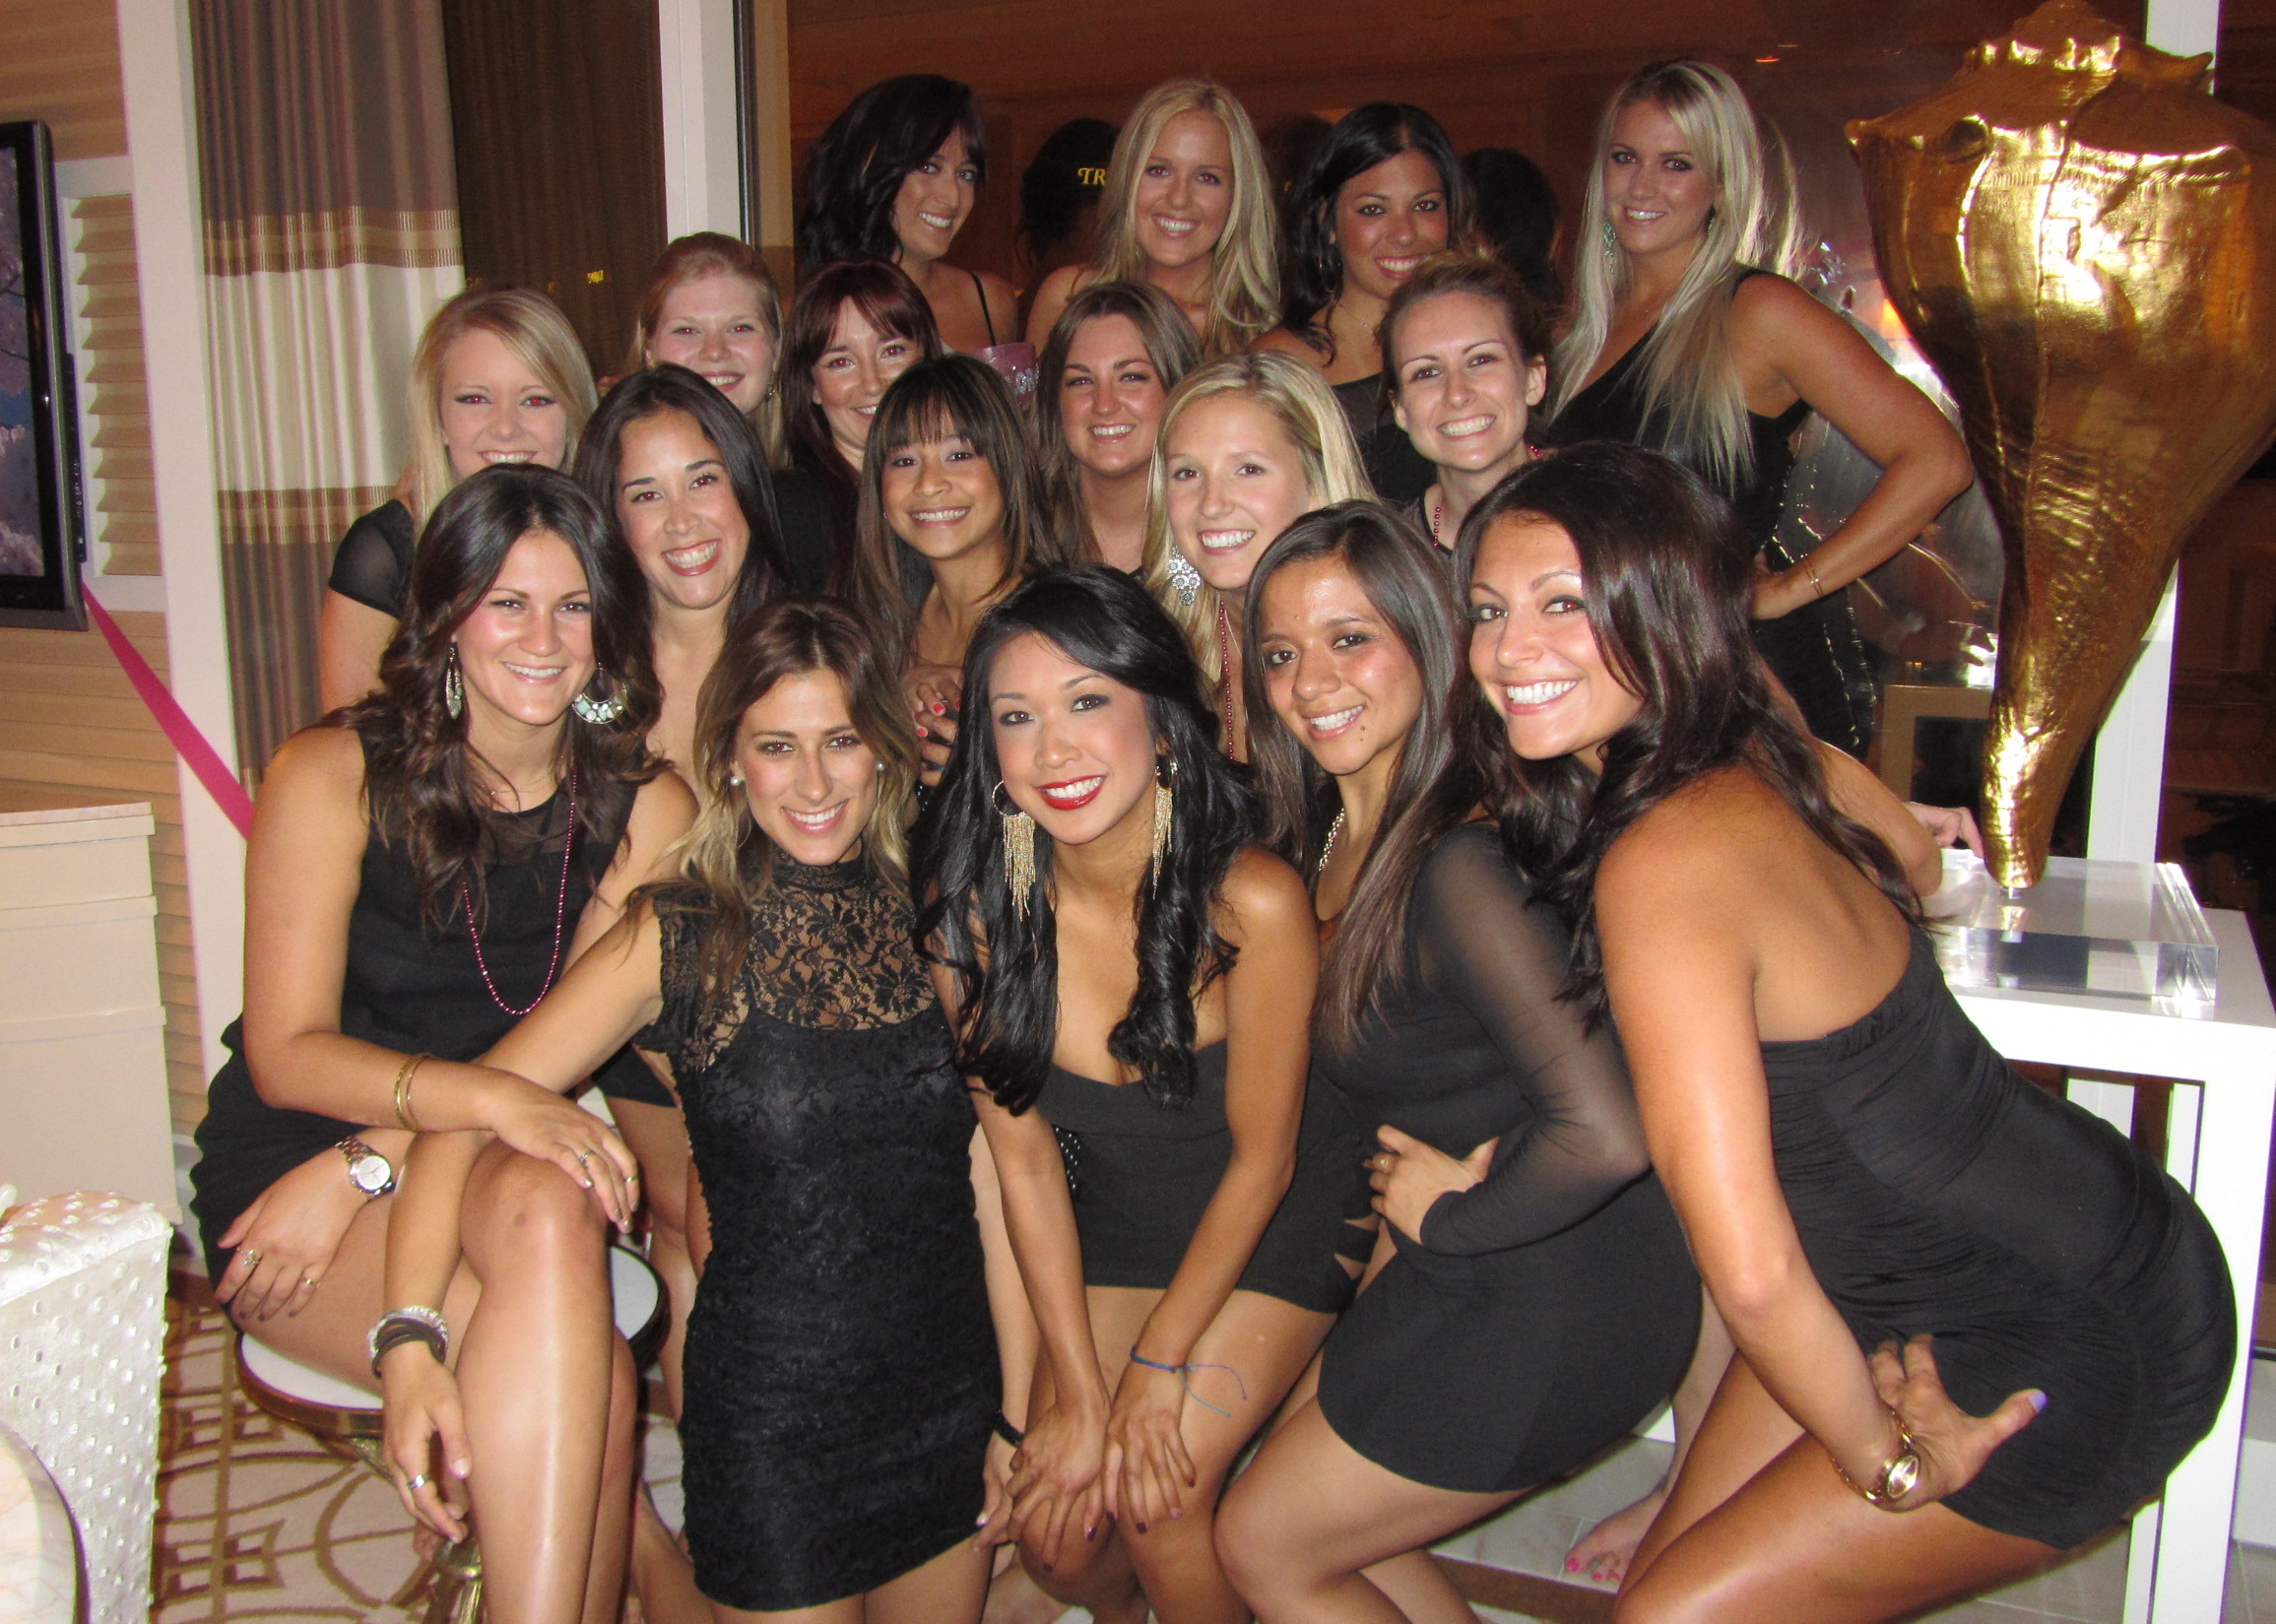 how to meet women in las vegas